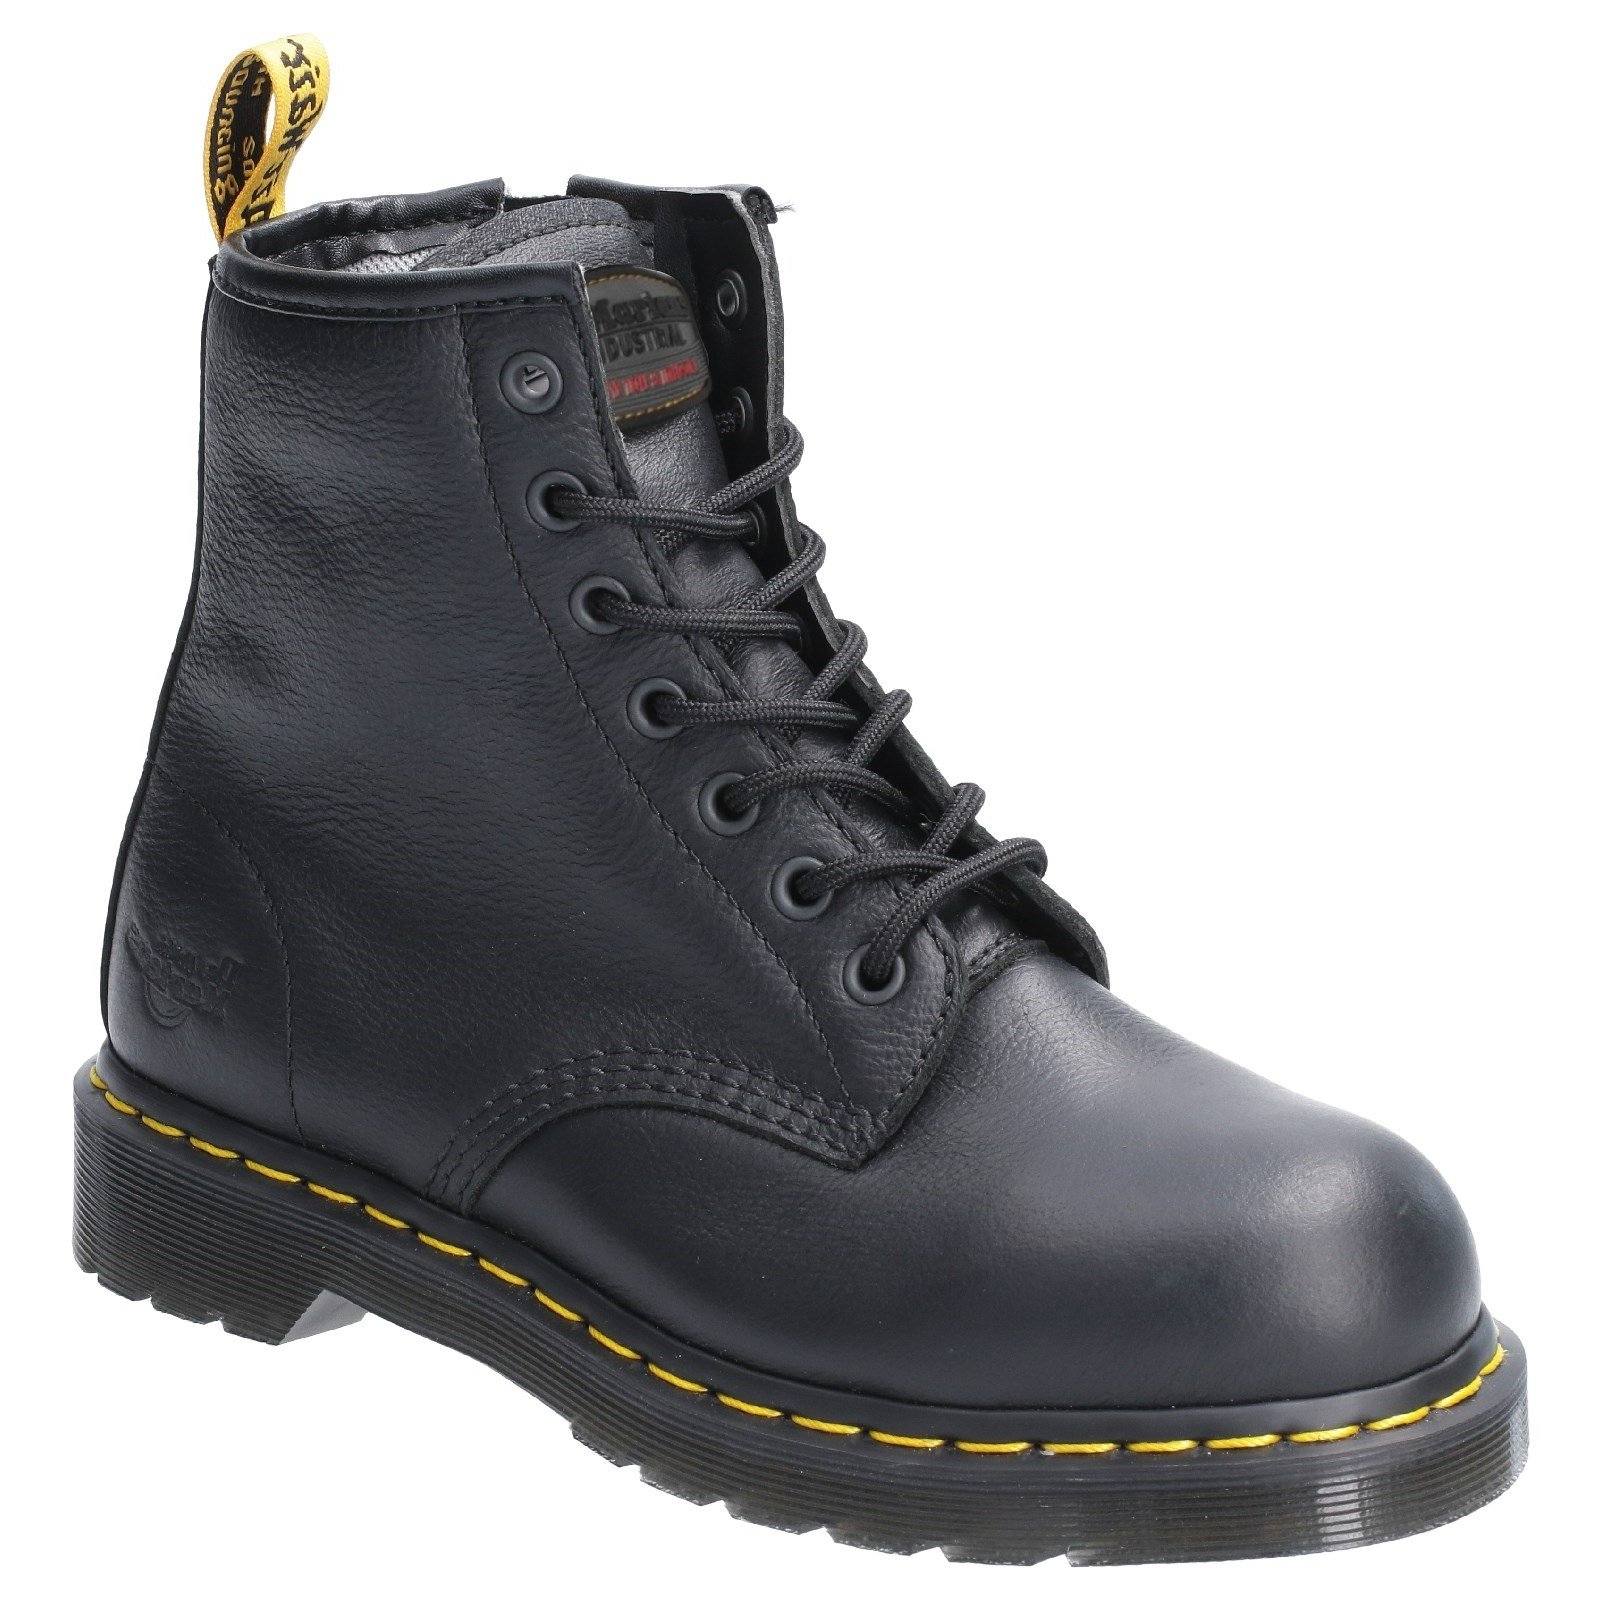 Dr Martens Women's Maple Zip Lace Up Safety Boot Various Colours 29515 - Black 7